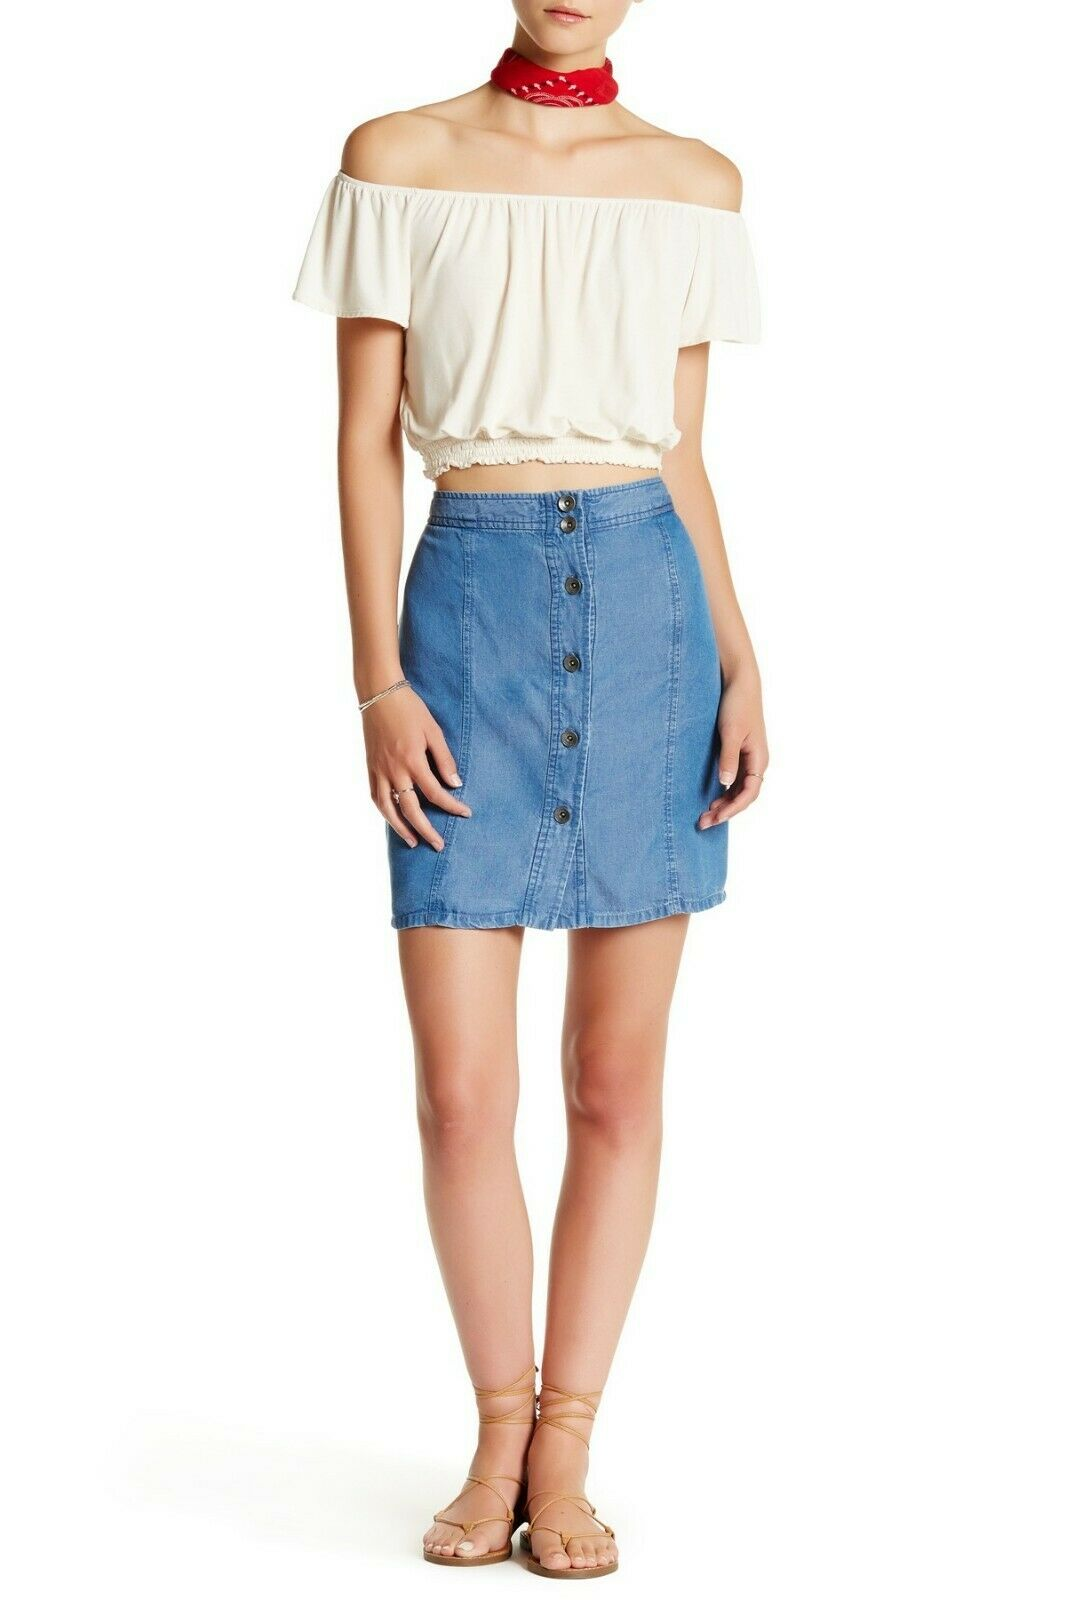 Splendid Button Up Mini Denim Skirt in Blau Woherren Größe Medium M MSRP